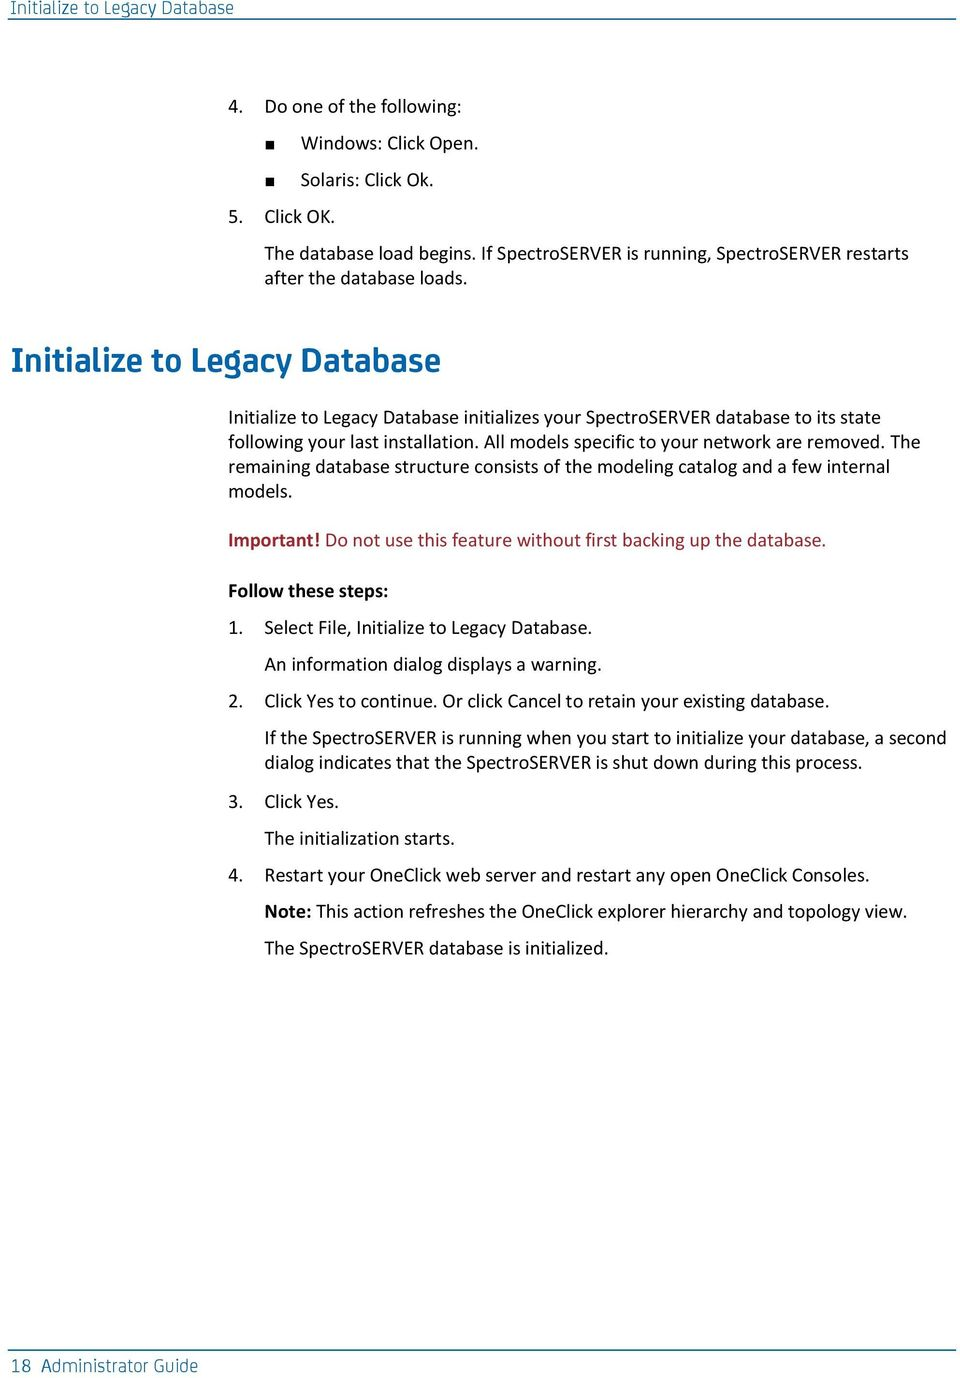 Initialize to Legacy Database Initialize to Legacy Database initializes your SpectroSERVER database to its state following your last installation. All models specific to your network are removed.